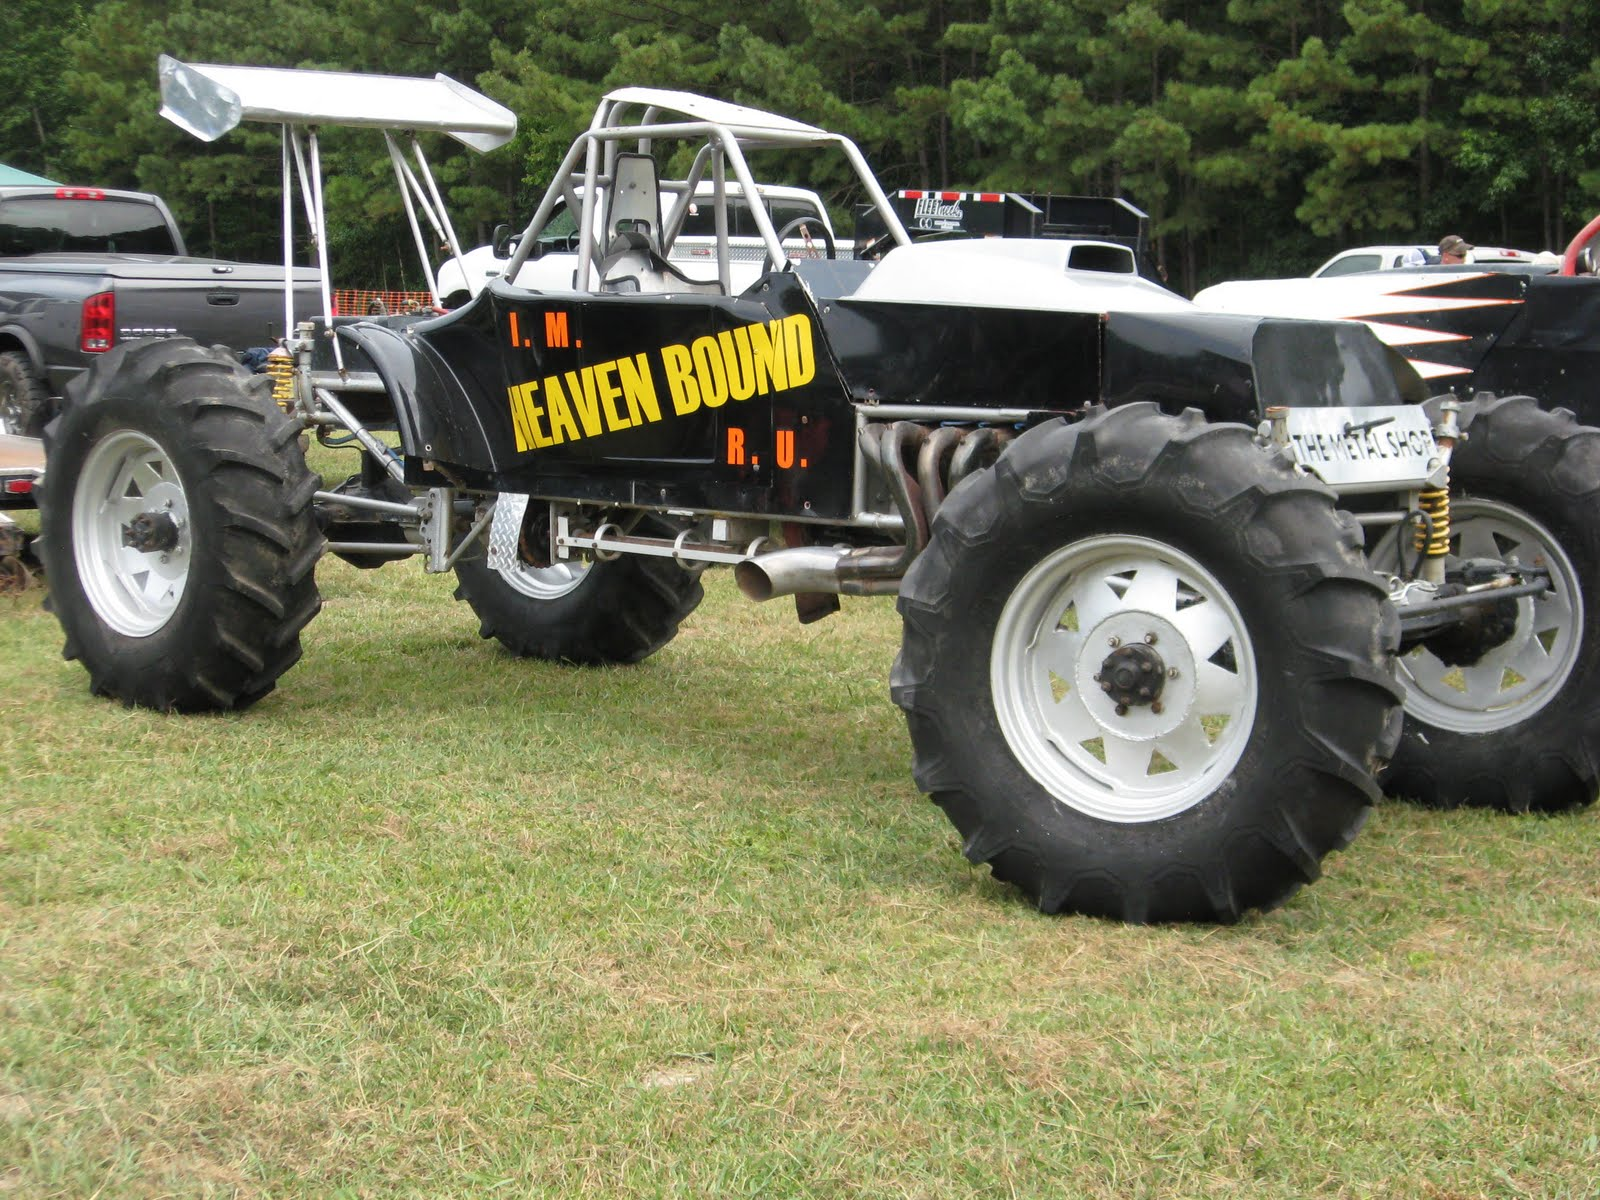 Mud bogger mud bogs truck and tractor pulls monster trucks ect pinterest monster trucks cars and redneck trucks